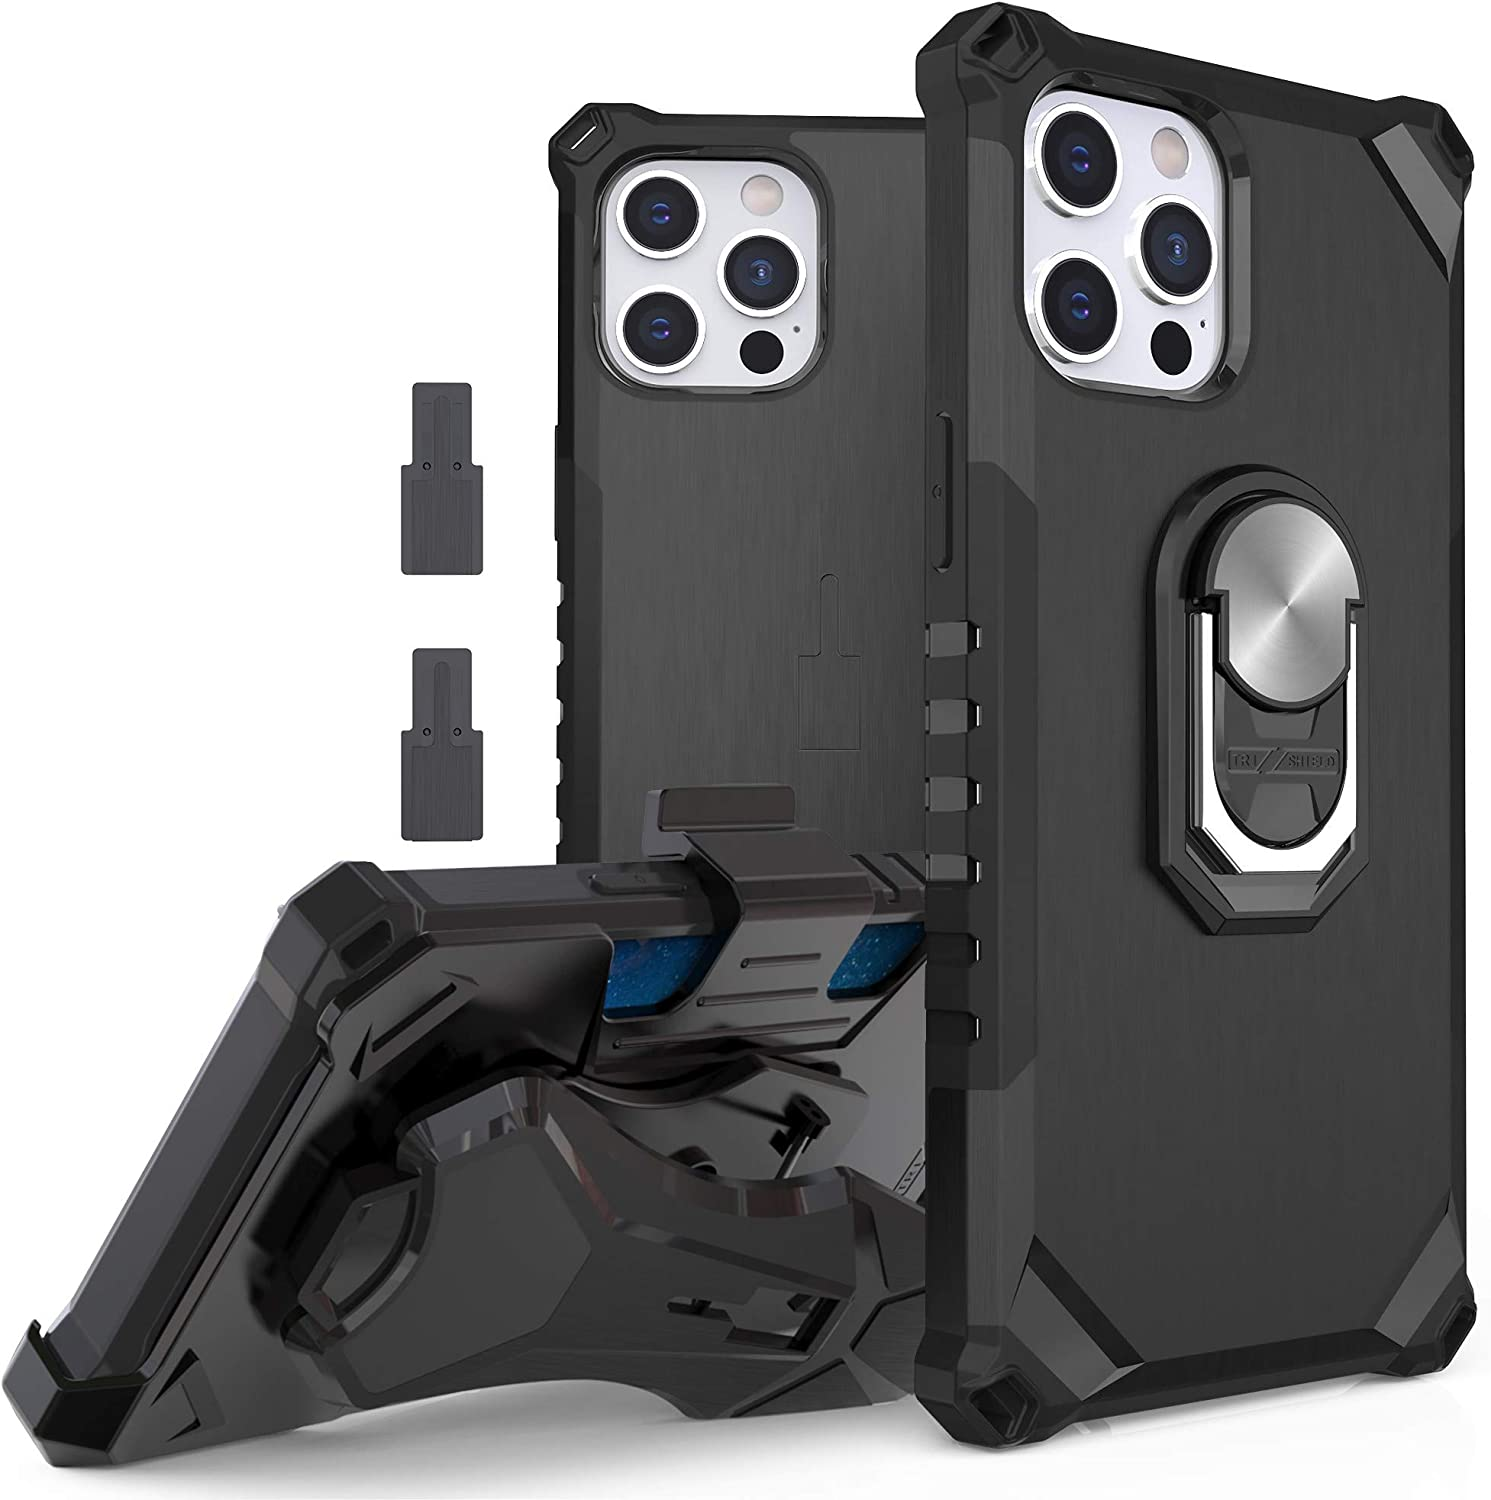 """BEYOND CELL Compatible with iPhone 12/iPhone 12 Pro (6.1"""") Case, Tri-Shield 2.0 Military Grade Magnetic Ring Kickstand with Multifunctional Belt Clip Holster for Car Mount & Bike Mount."""